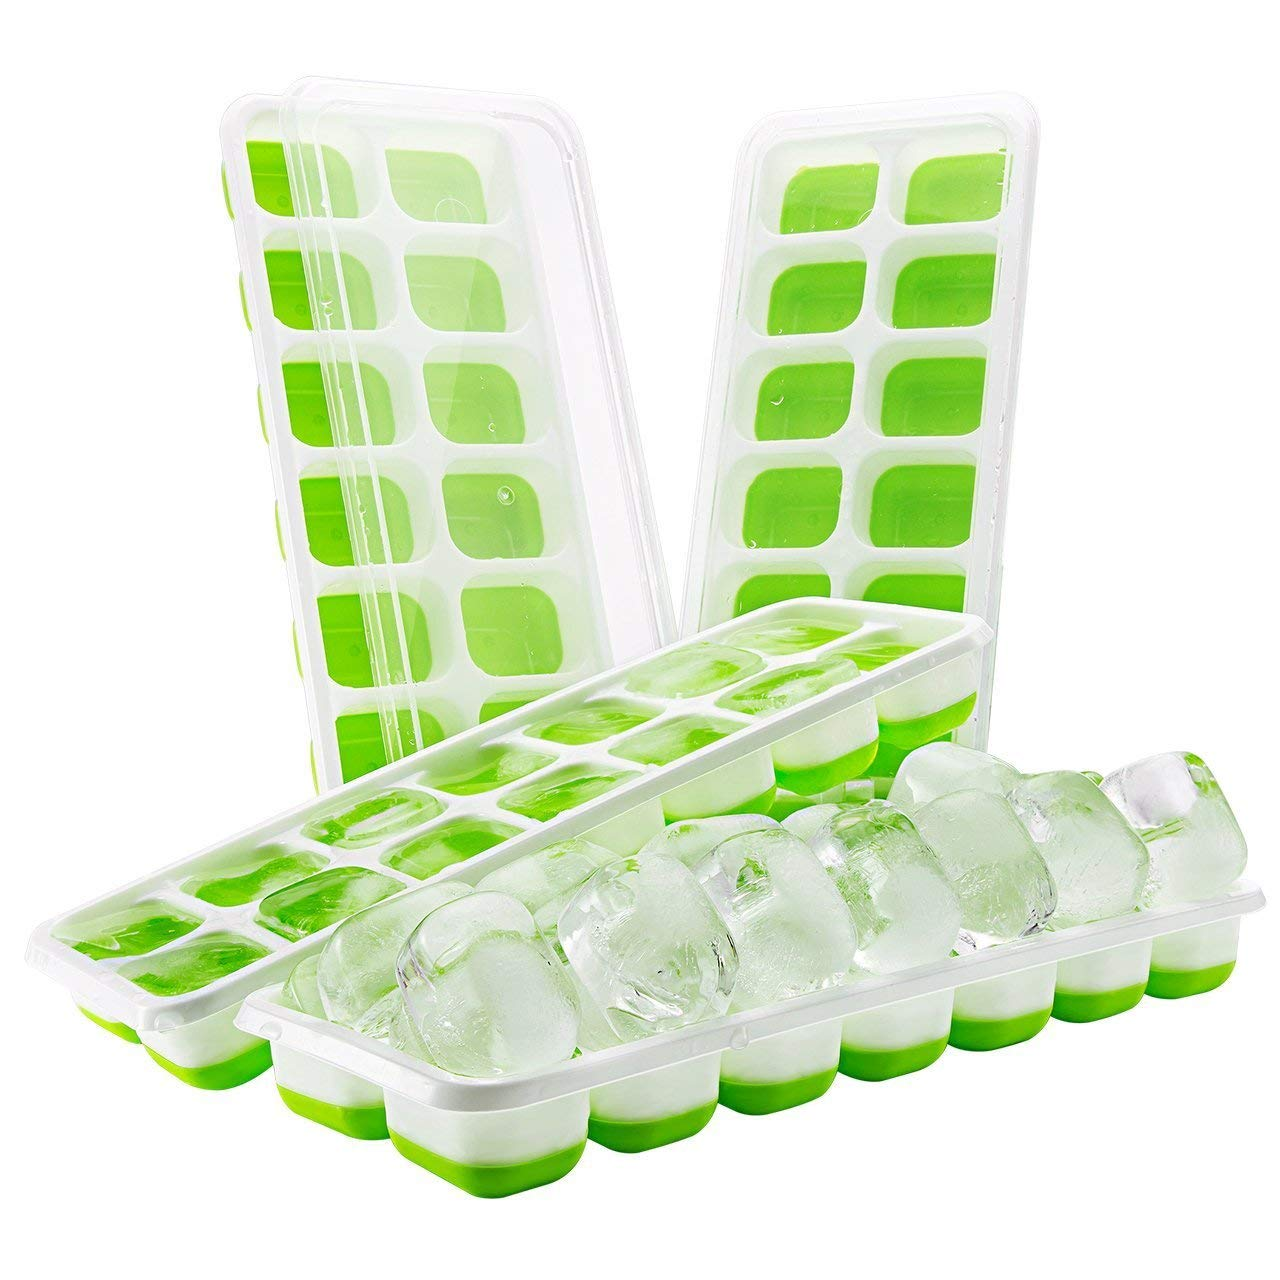 BaiFeng 4 Pcs/Set Green 14 Grid Silicone Ice Trays,Non-Spill Removable Lid, Easy Demould,Flexible Ice Cube Moulds,Family Creates DIY Variety Delicious Ice Cubes